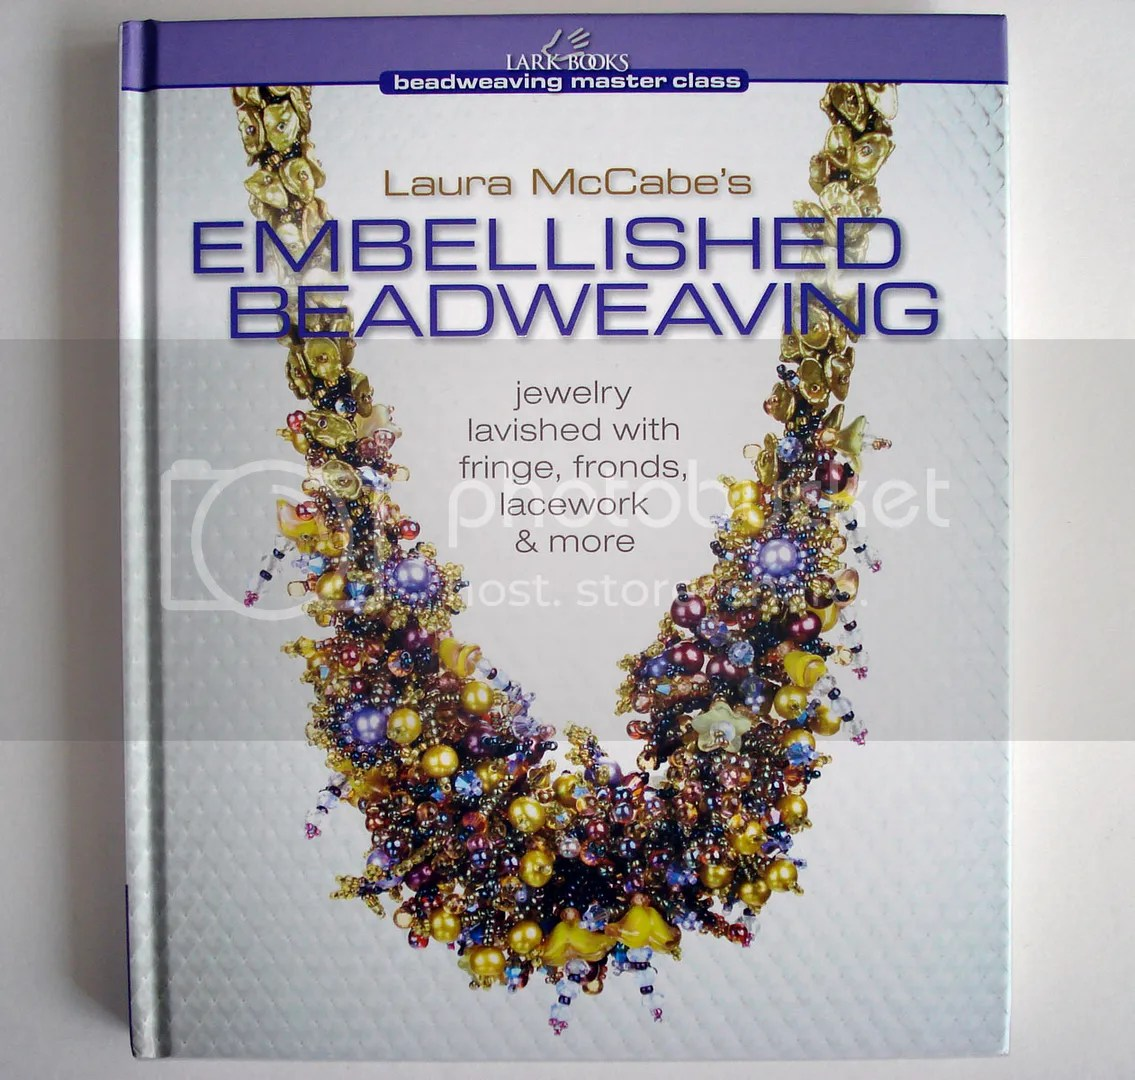 Lark Books blogaversary giveaway Laura McCabe Beaded Embellishment artist beading beadwork bead embroidery jewelry making book